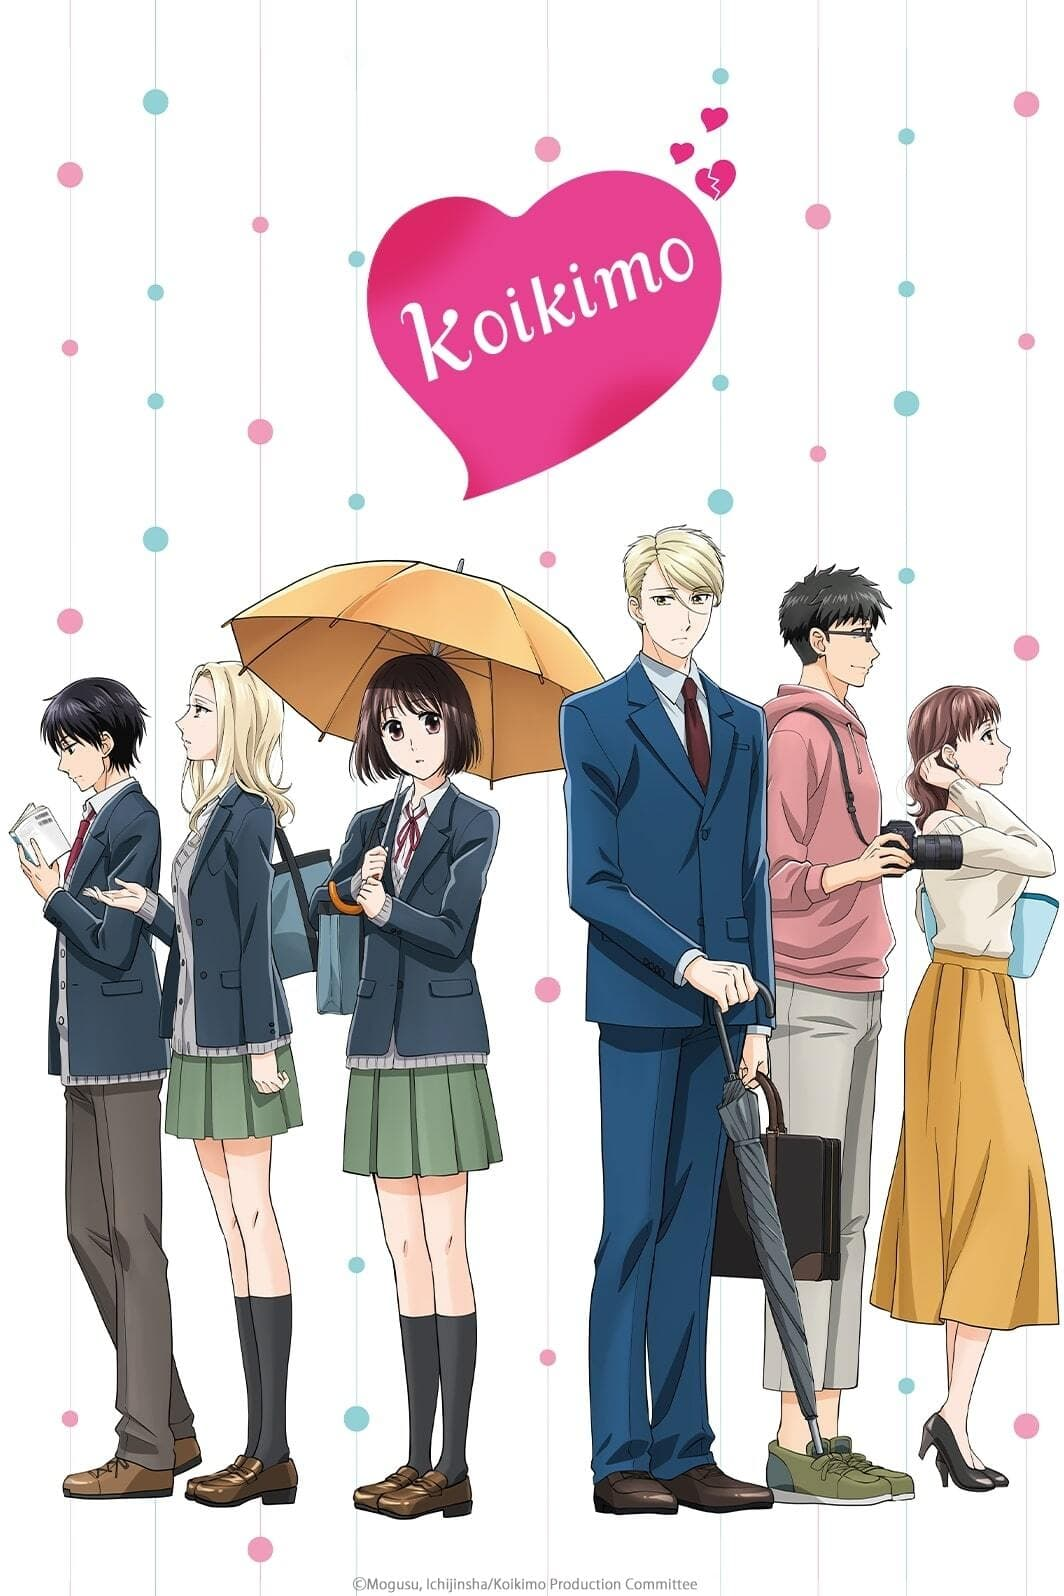 Koikimo Episode 12 Release Date And Time Confirmed By Crunchyroll